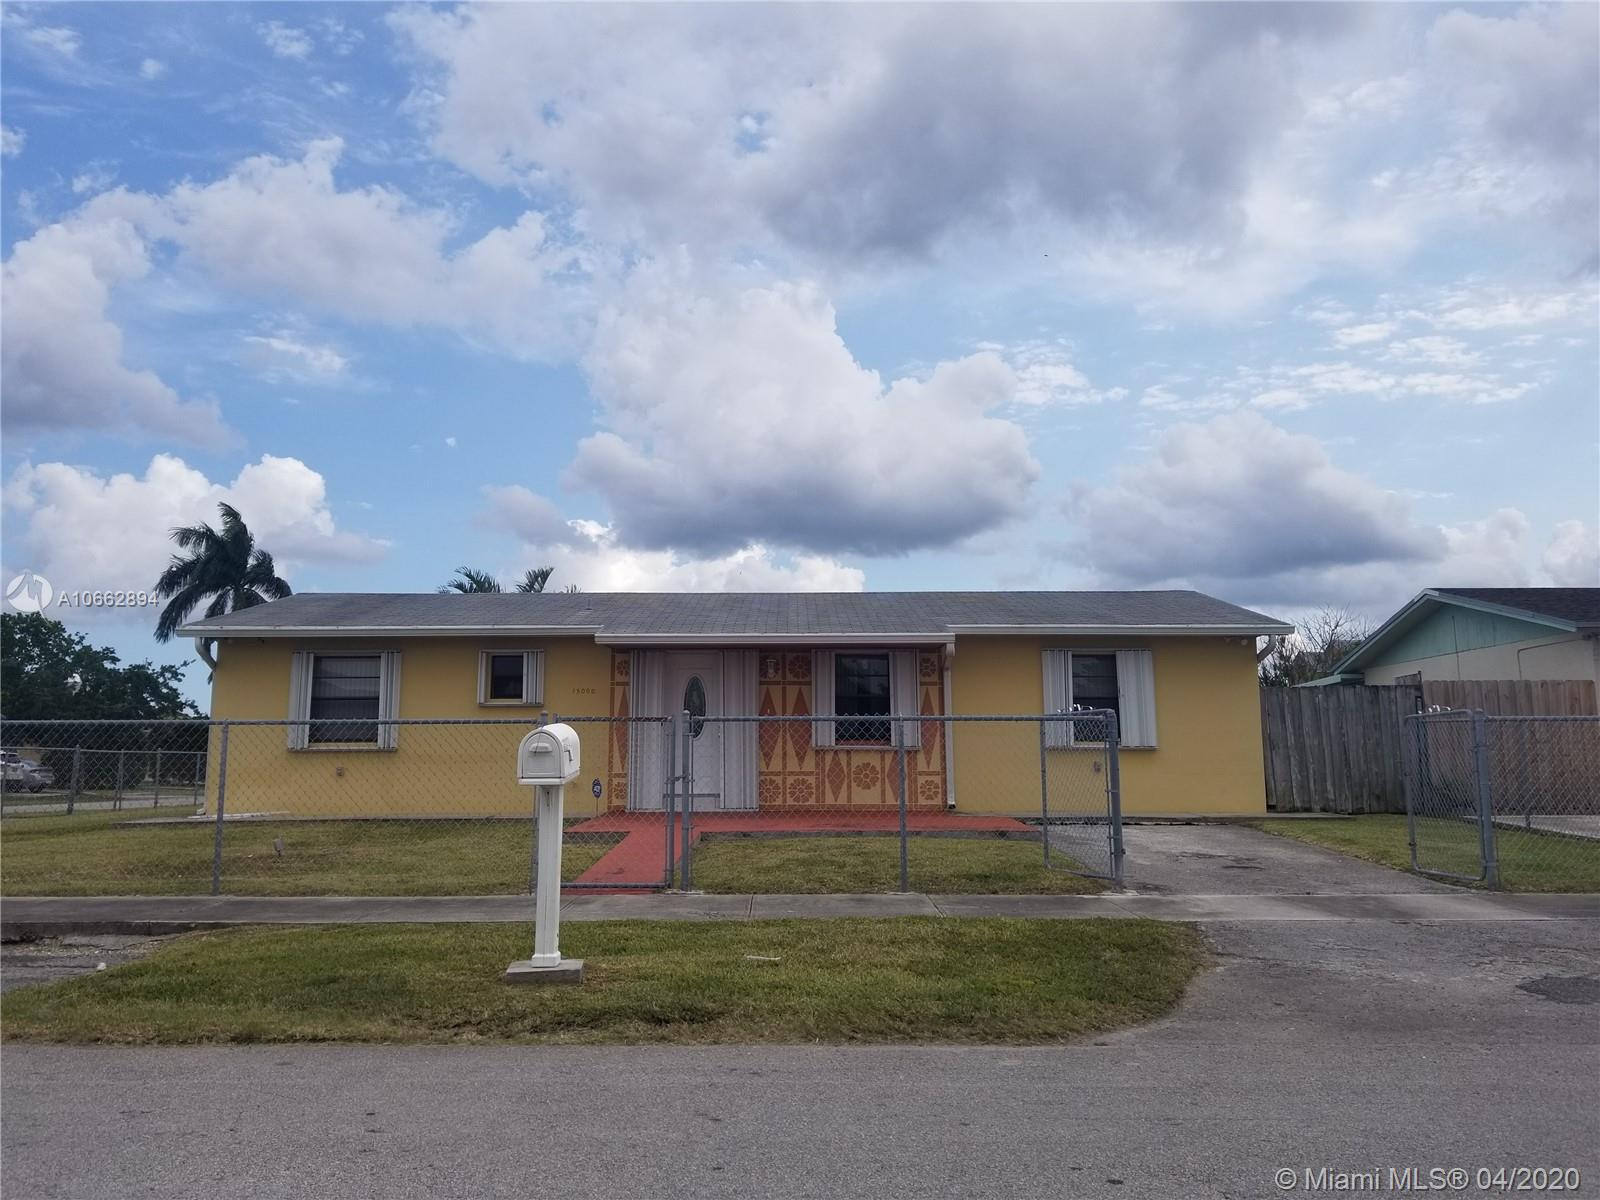 Great property in an excellent area in the heart of Homestead. Corner lot. Next to shopping malls, schools, and Turnpike. 30 mnts from the ocean. Everything you need in one location. Well maintained, tile throughout the house.  Back yard has space for a pool. Also excellent investment opportunity. DON'T LET IT PASS !!!